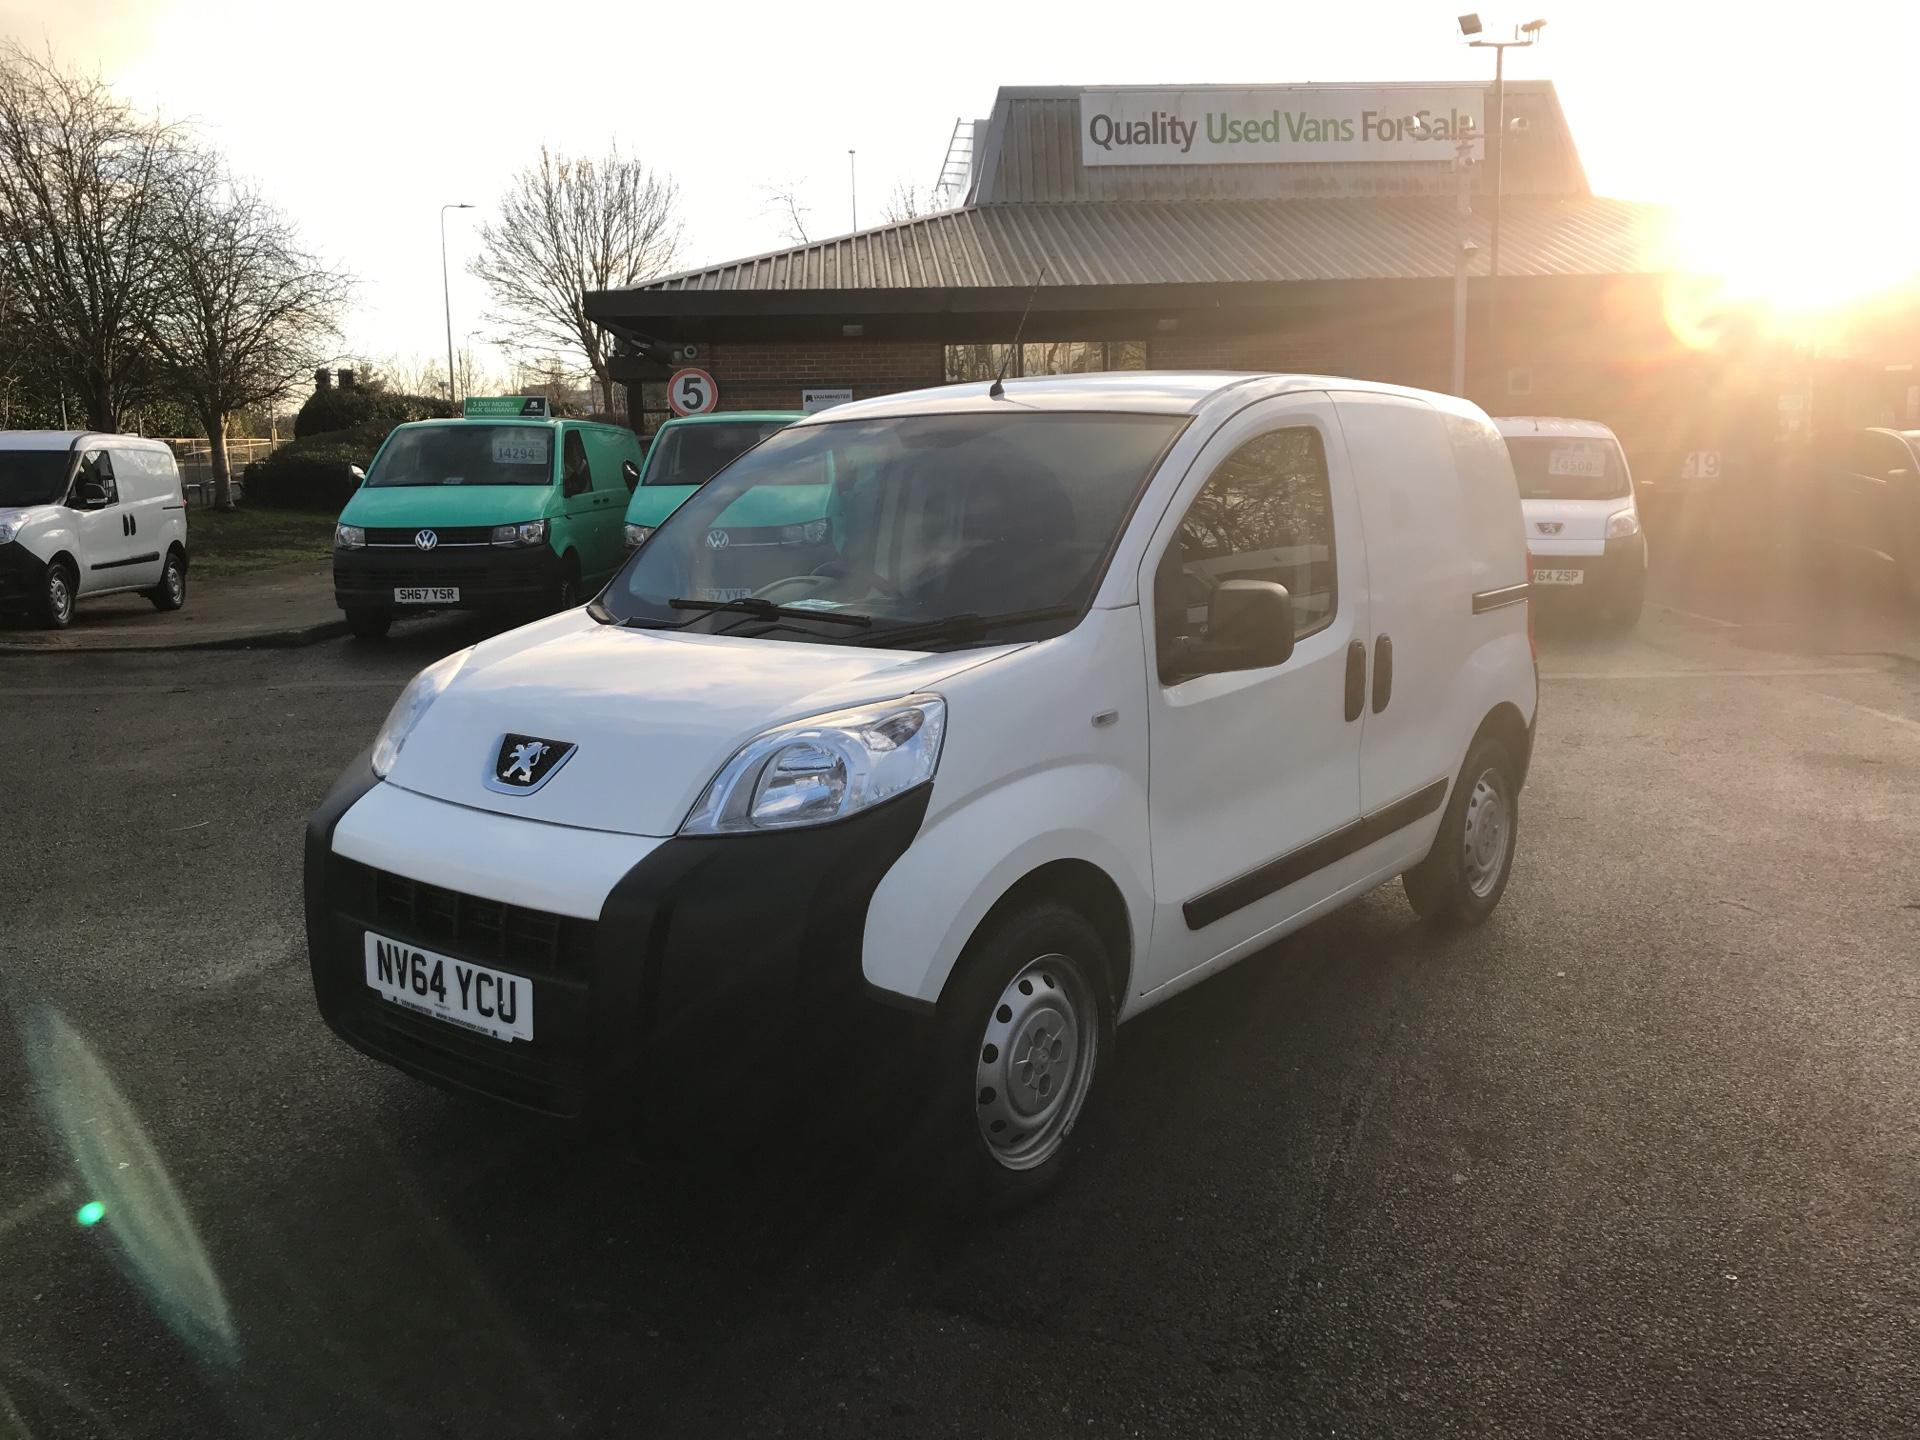 2015 Peugeot Bipper 1.3 HDI 75 S PLUS PACK NON S/S EURO 5 (NV64YCU) Image 7